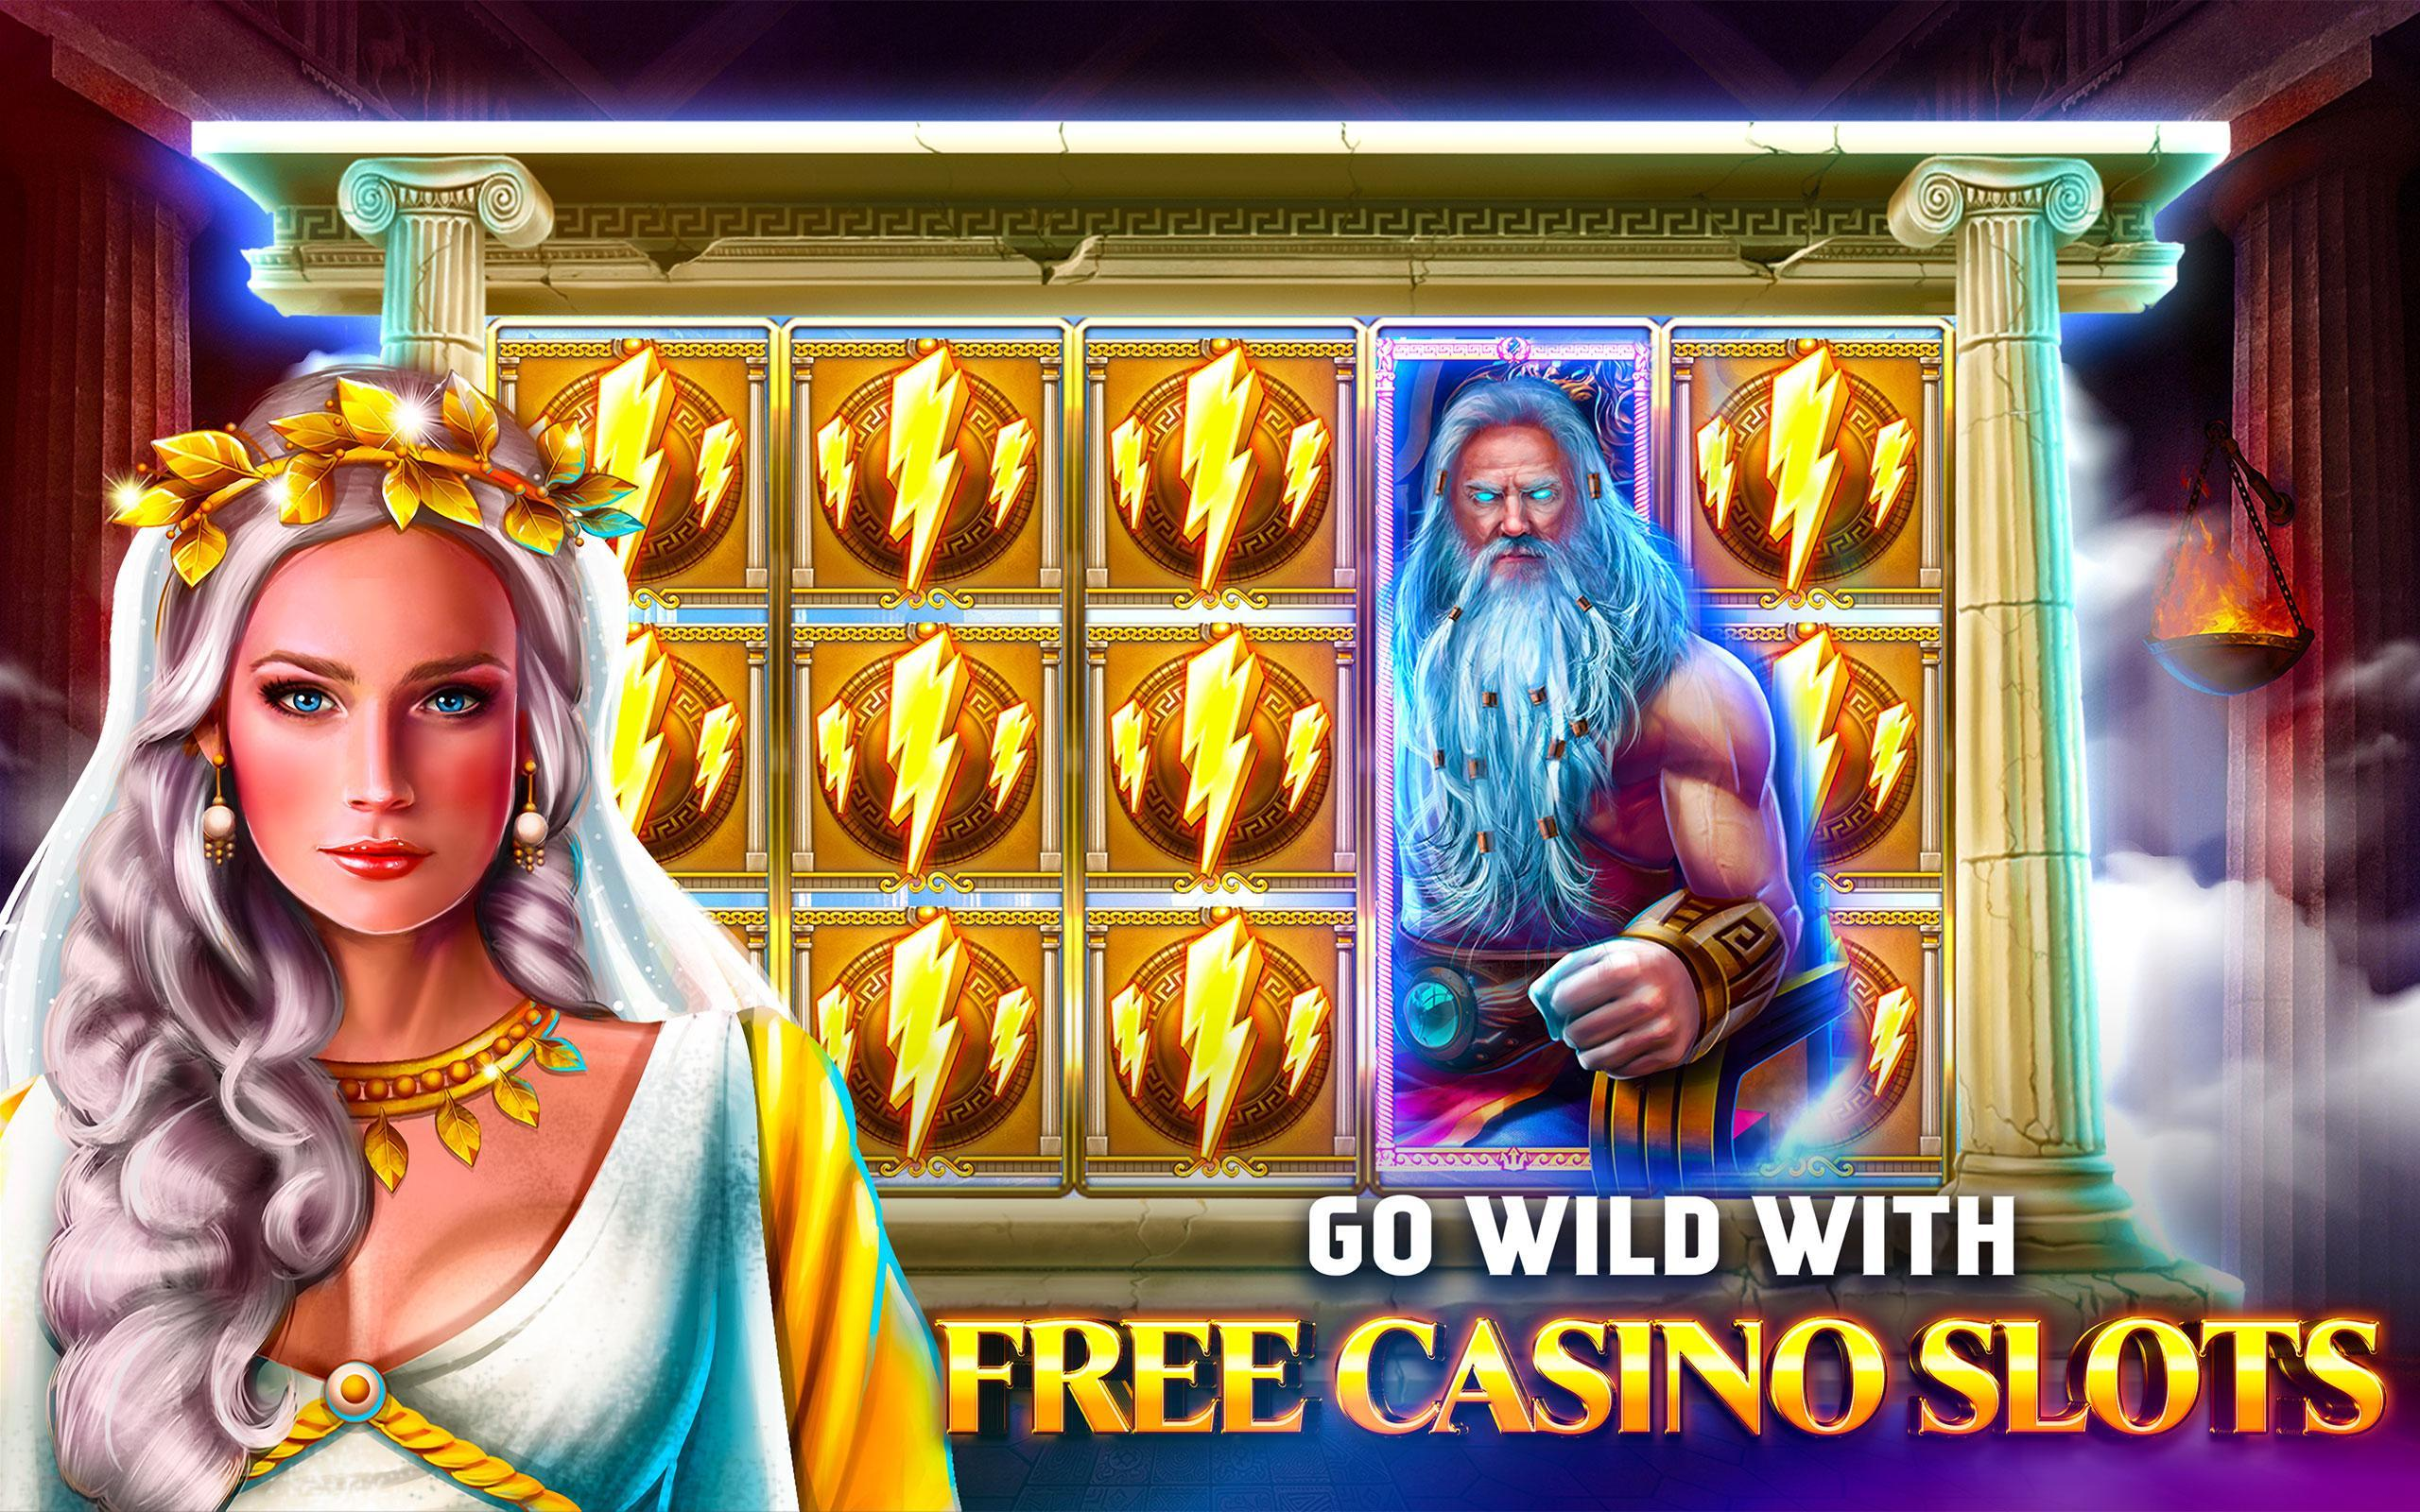 Slots Lightning Free Slot Machine Casino Game For Android Apk